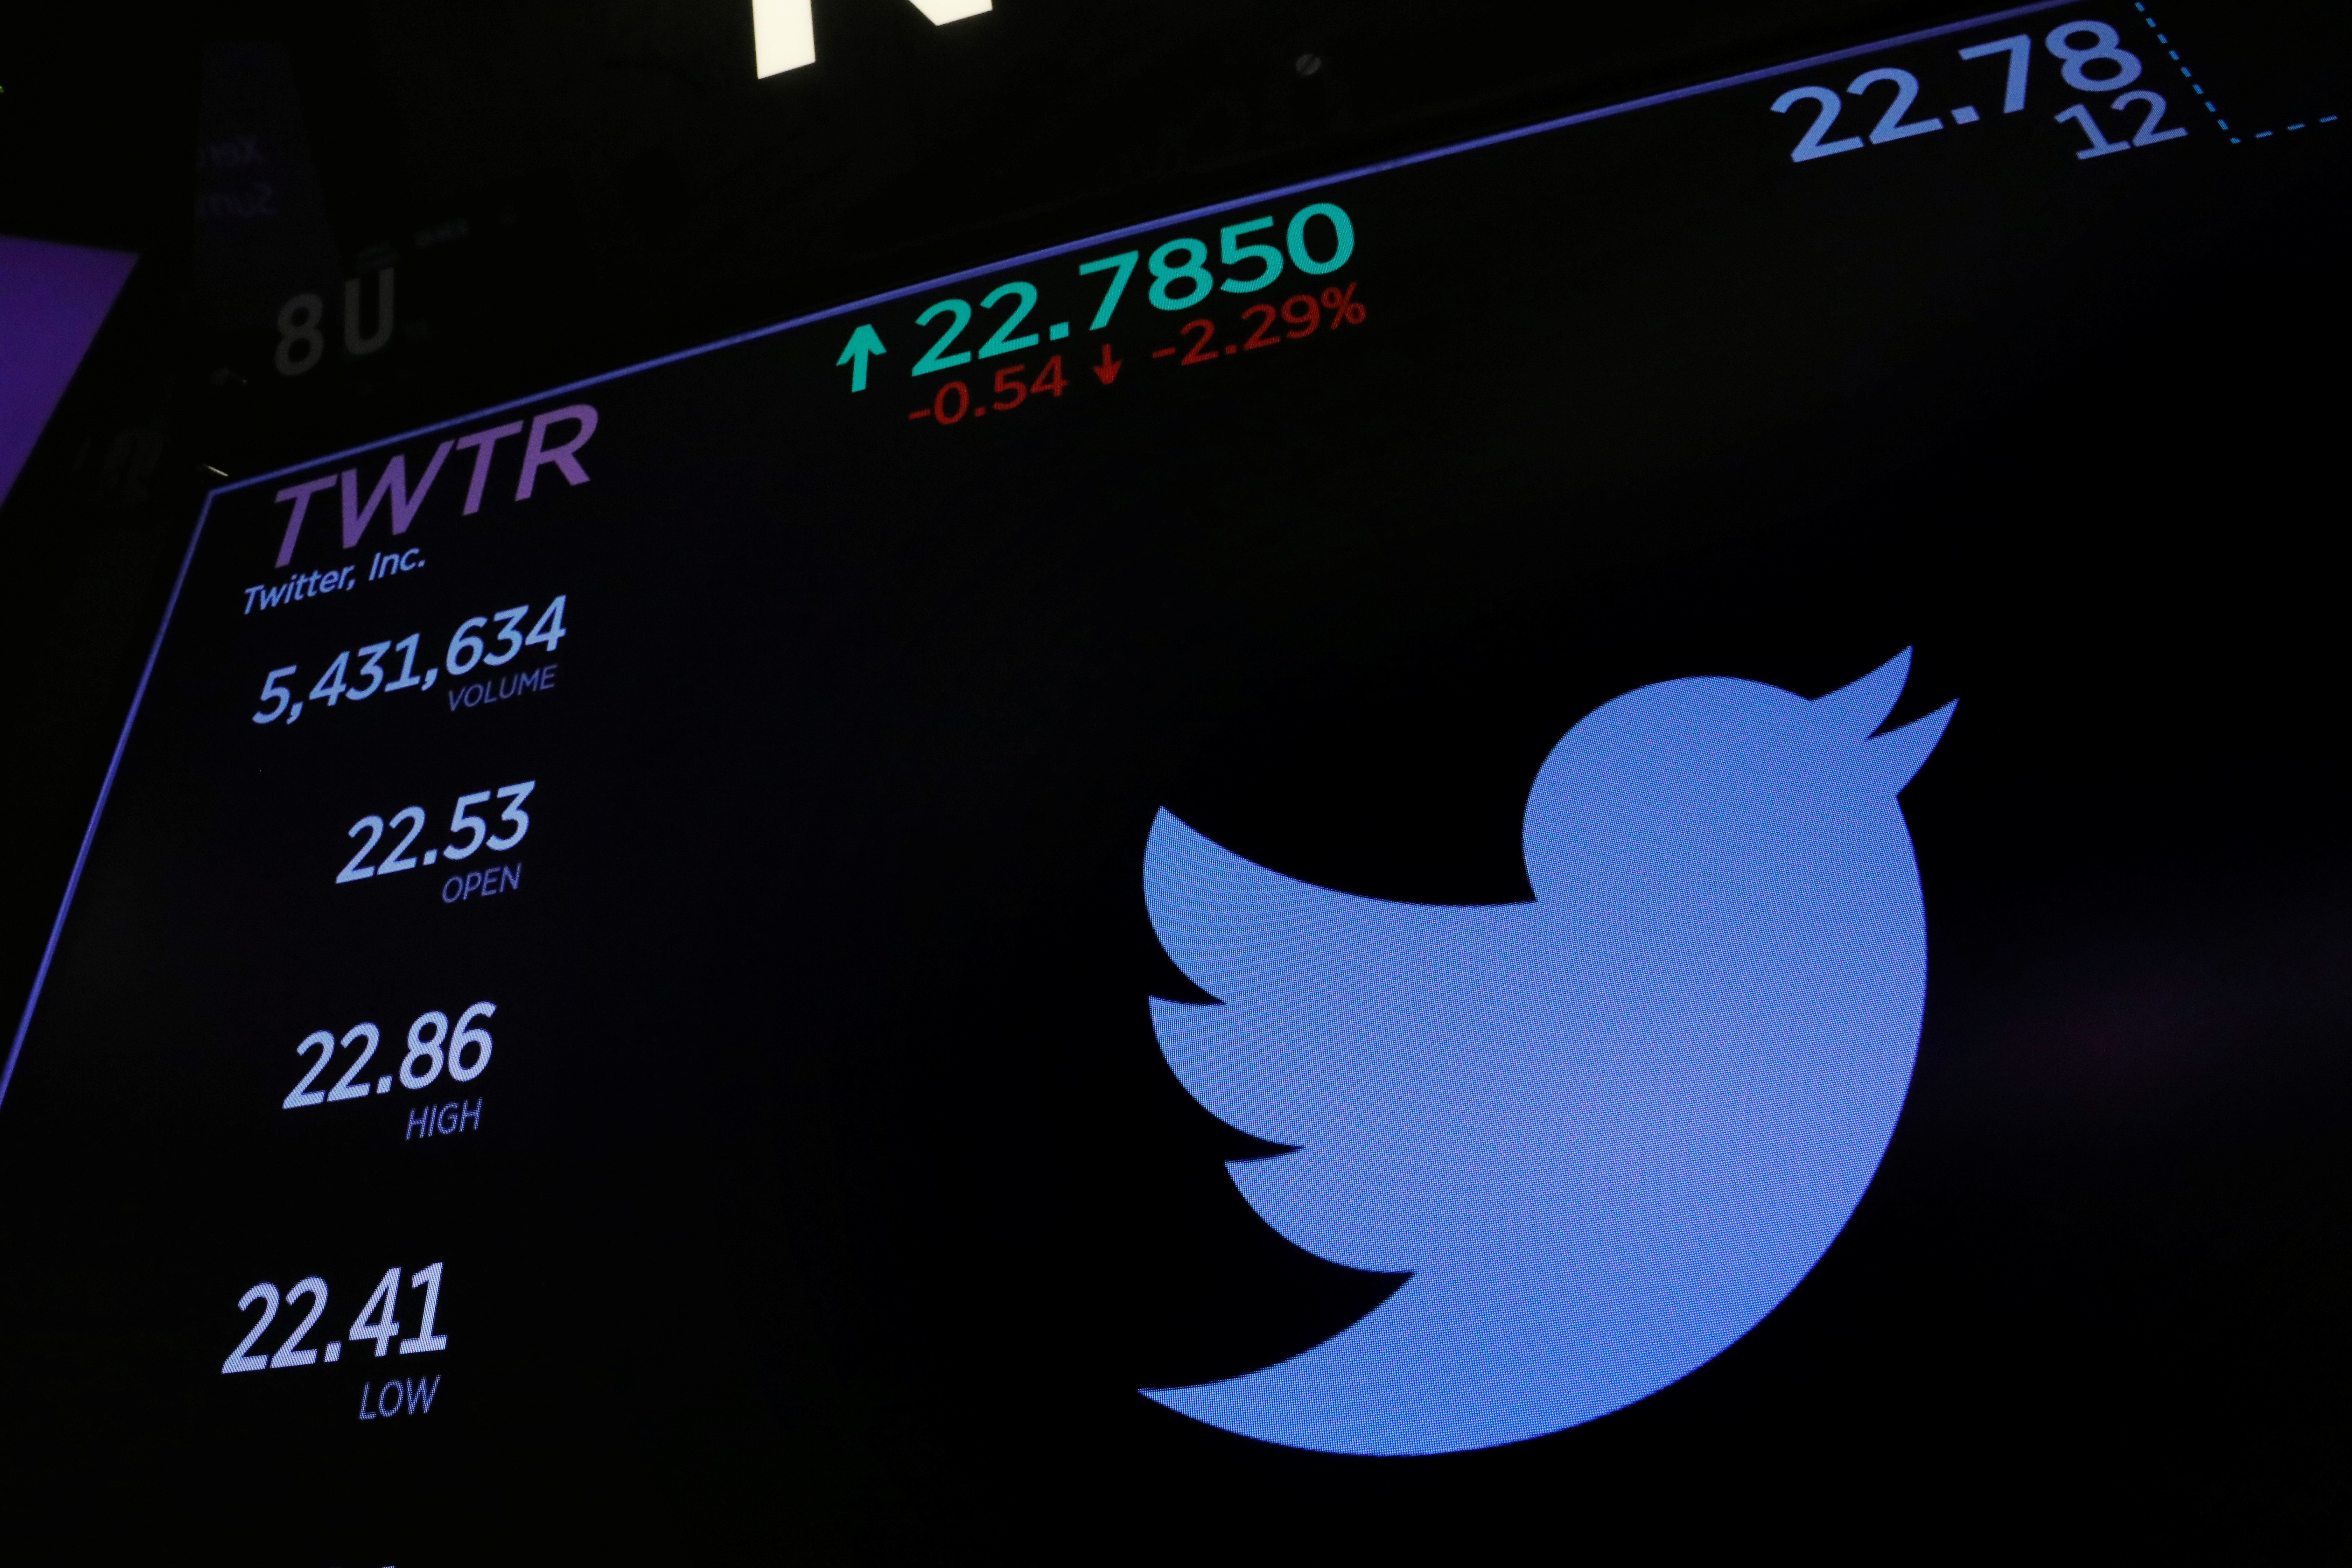 Twitter Has Suspended 1.2 Million Accounts For 'Terrorist Content'